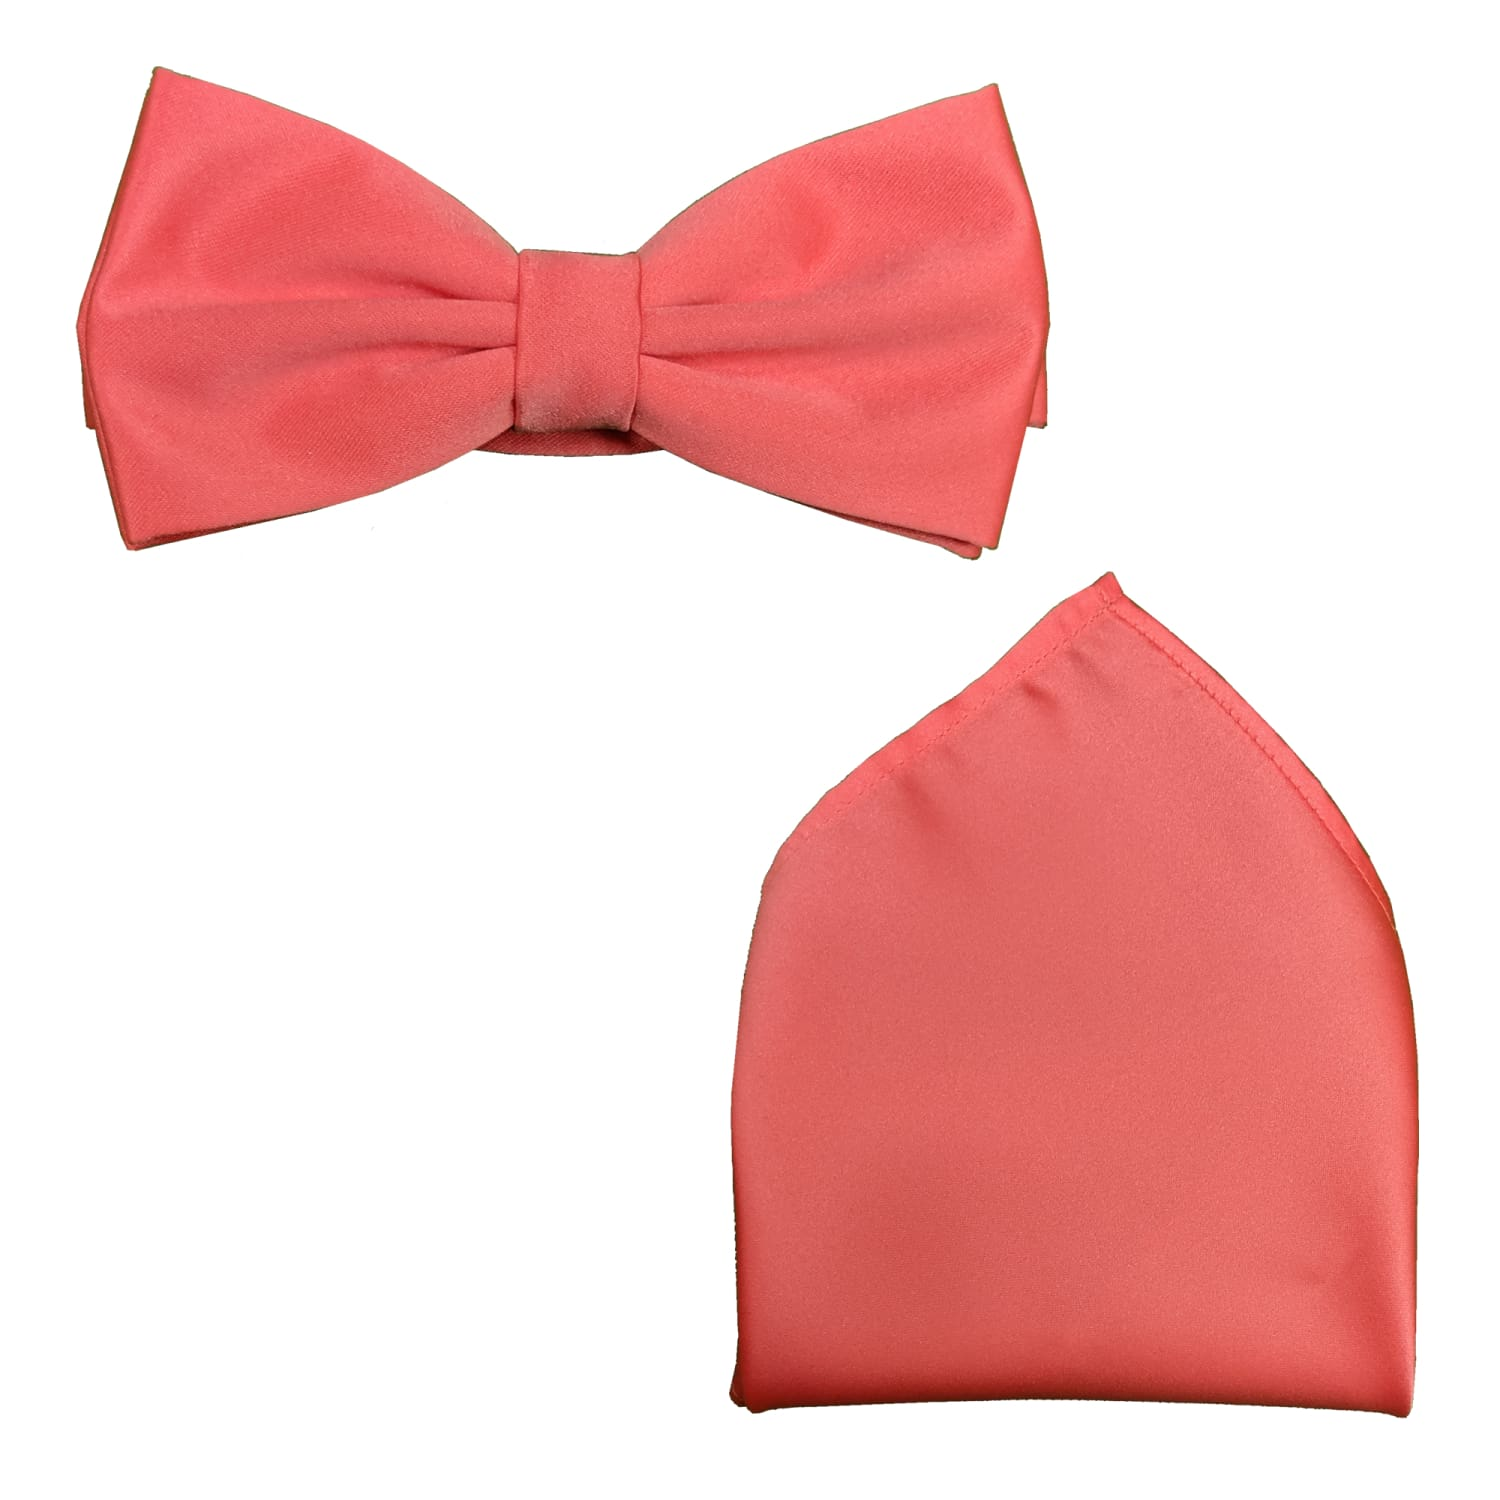 Folkespeare Bow Tie & Pocket Square Set - BK0030 - Coral 1